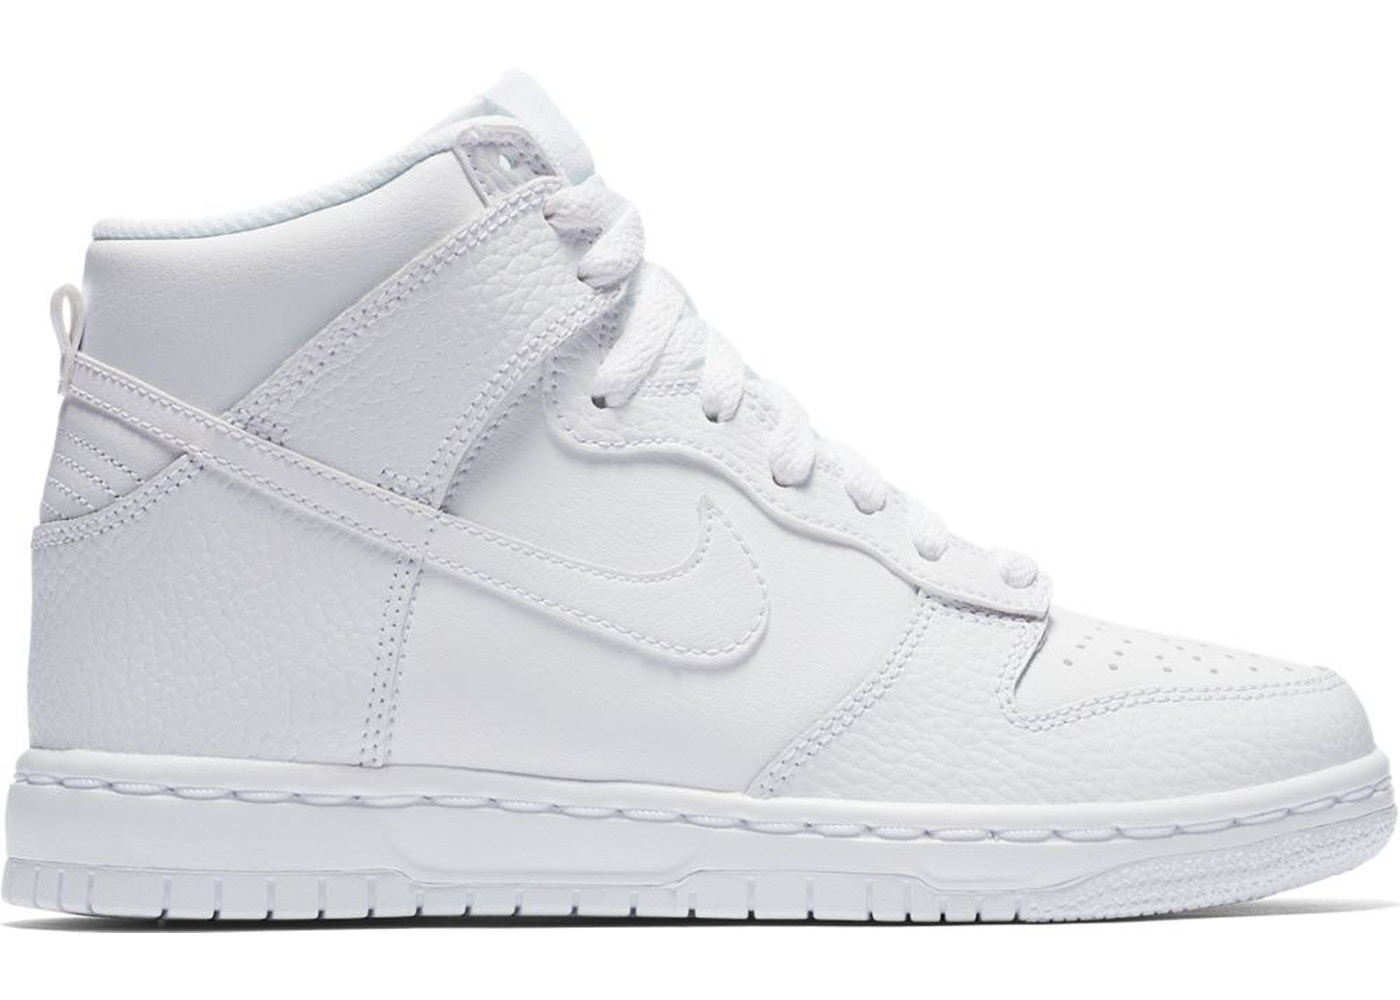 size 40 85d02 8189c Nike Dunk High White 2017 (GS) - 921797-100